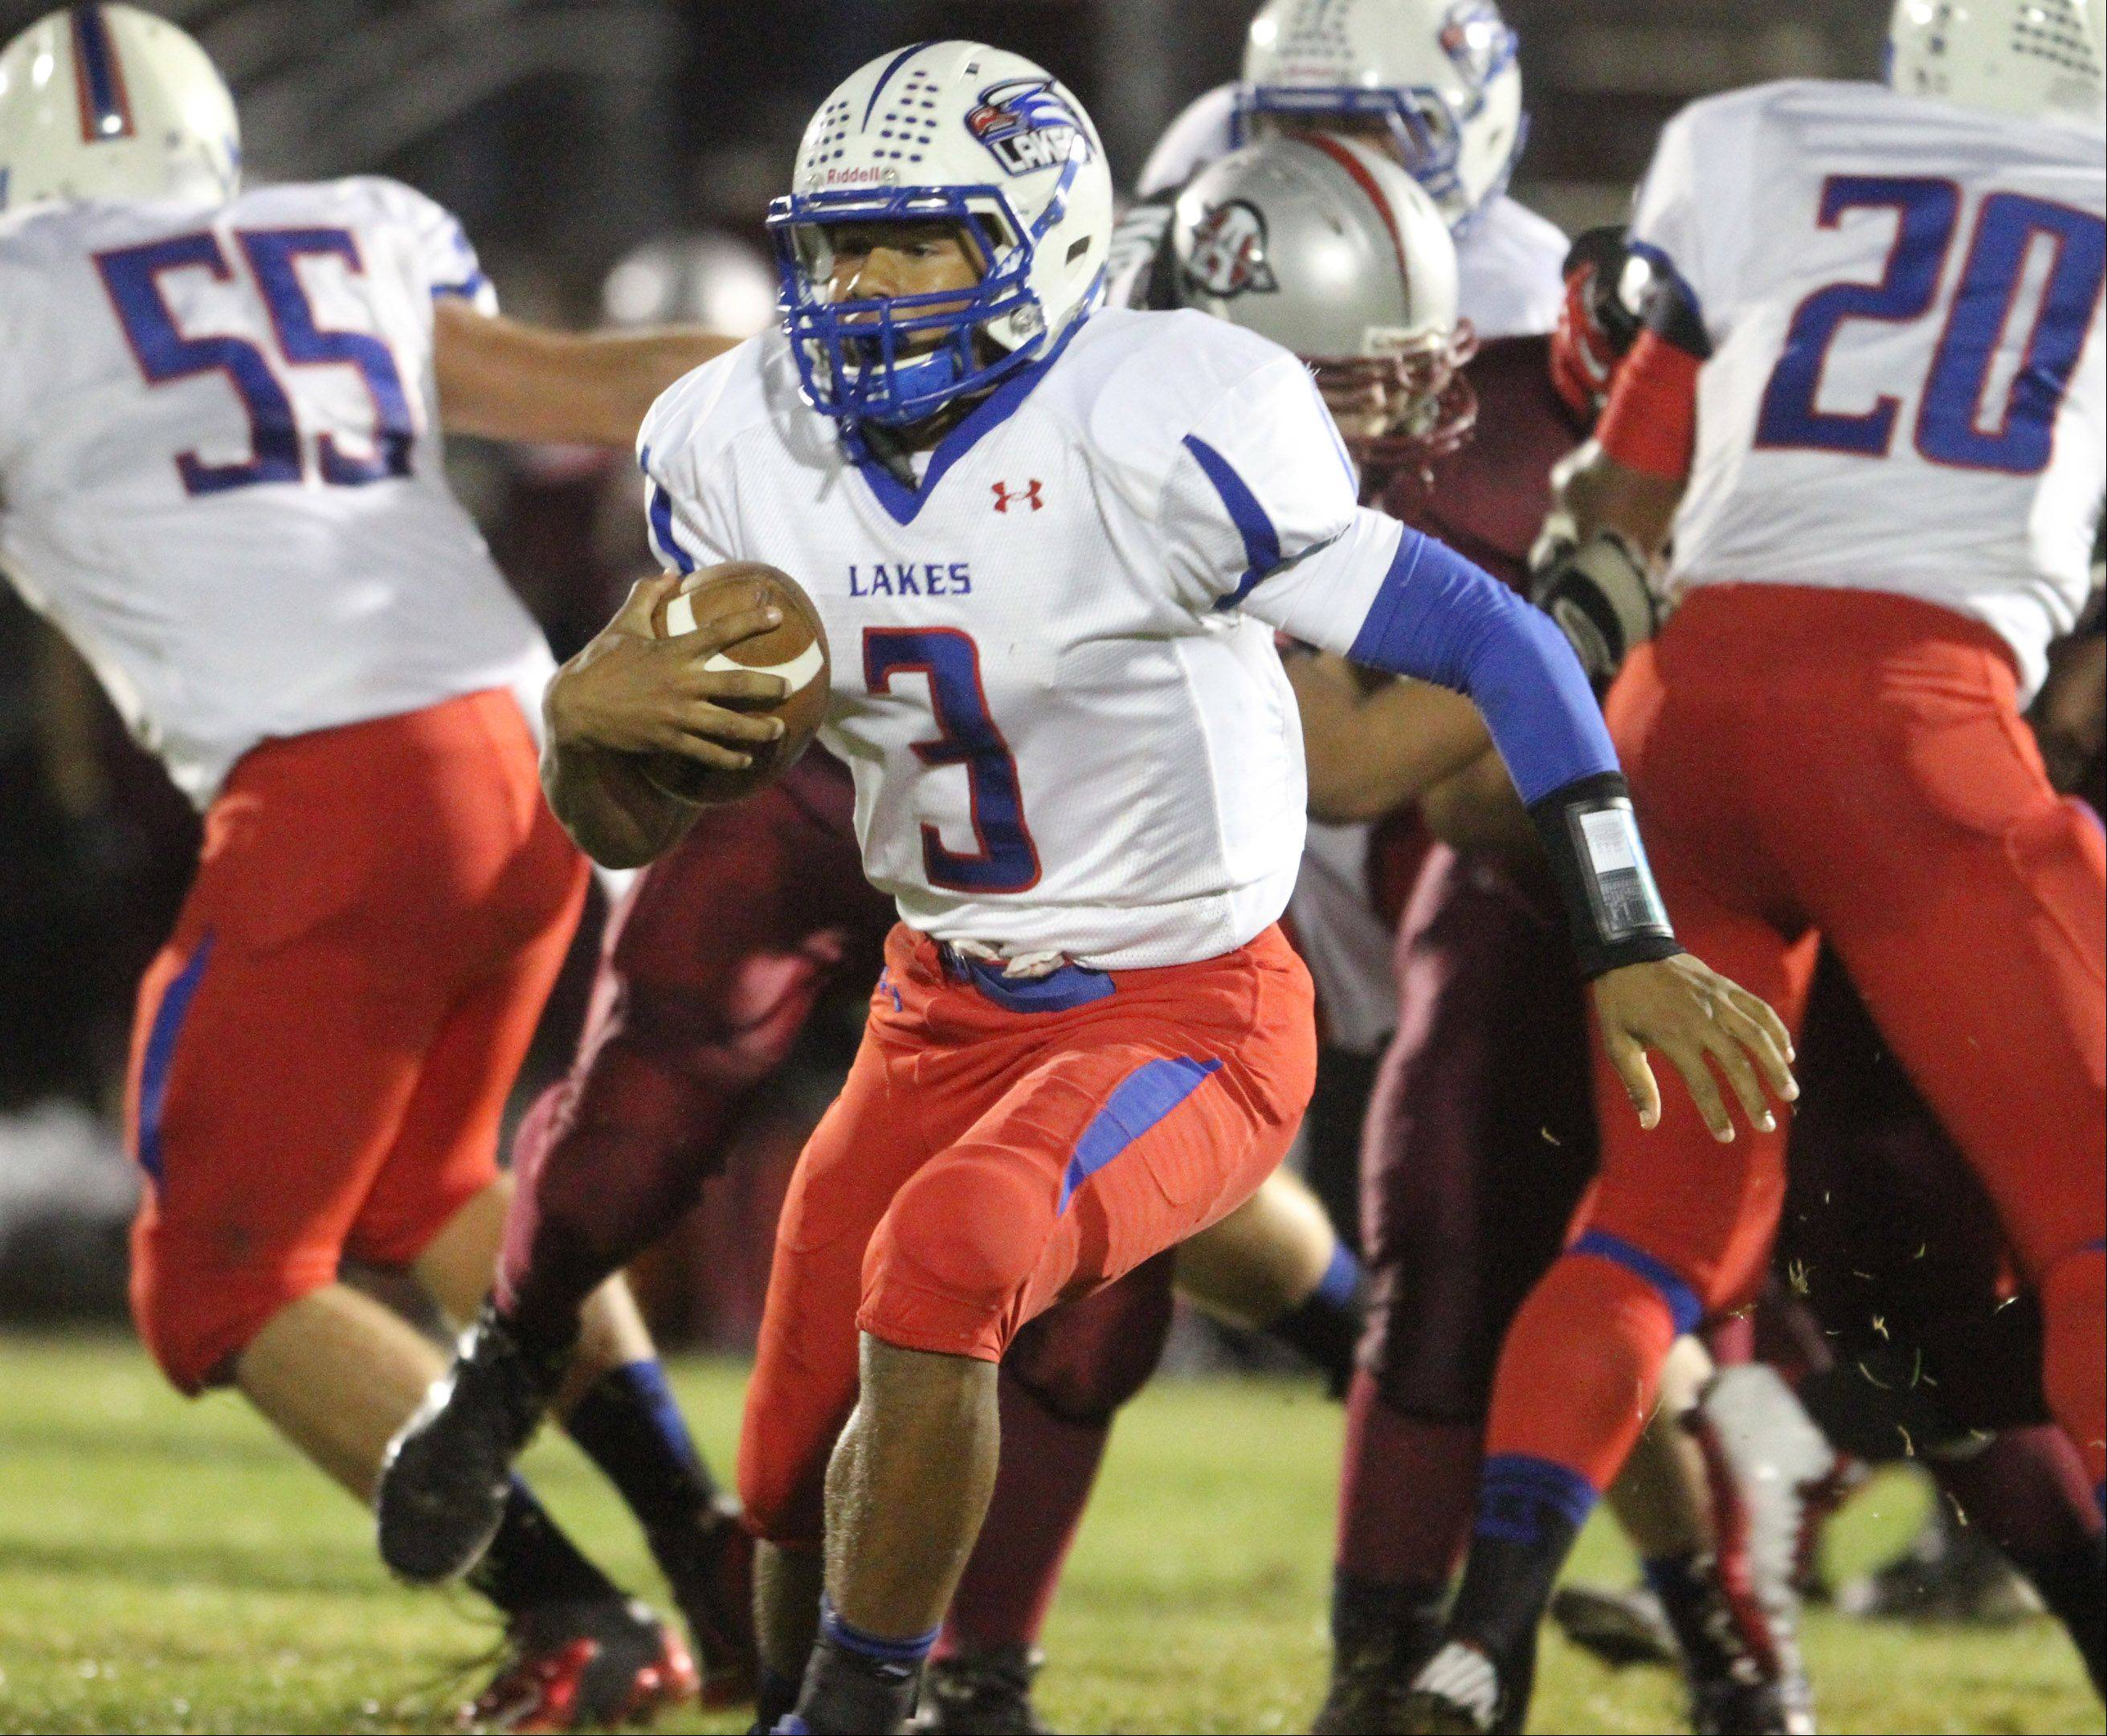 Lakes quarterback T.J. Edwards rushes the ball against Antioch .